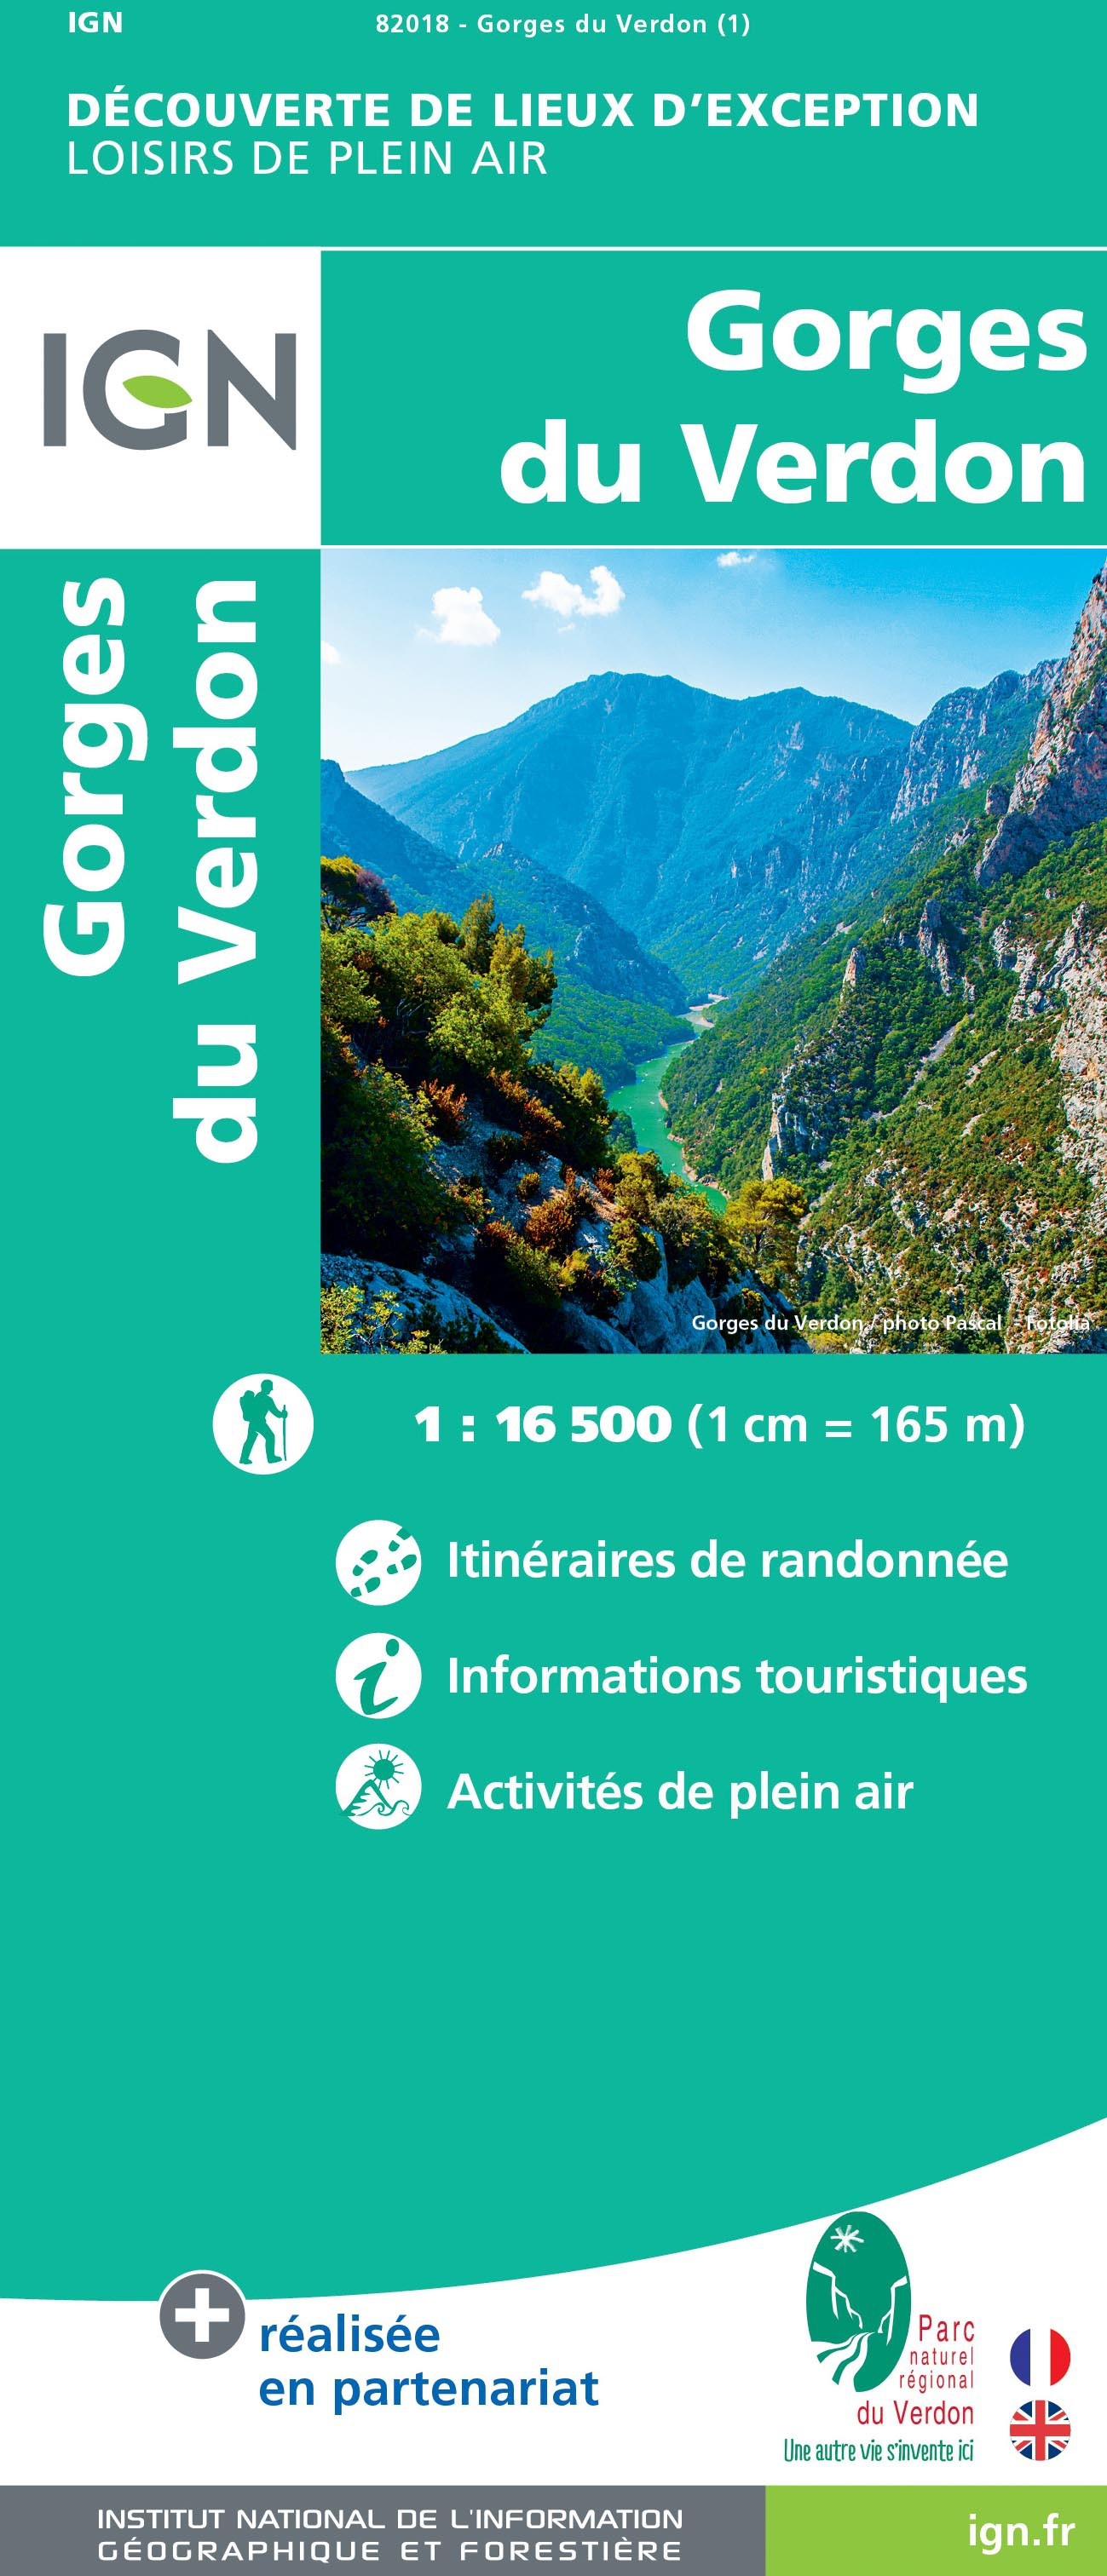 GORGES DU VERDON (Carte)